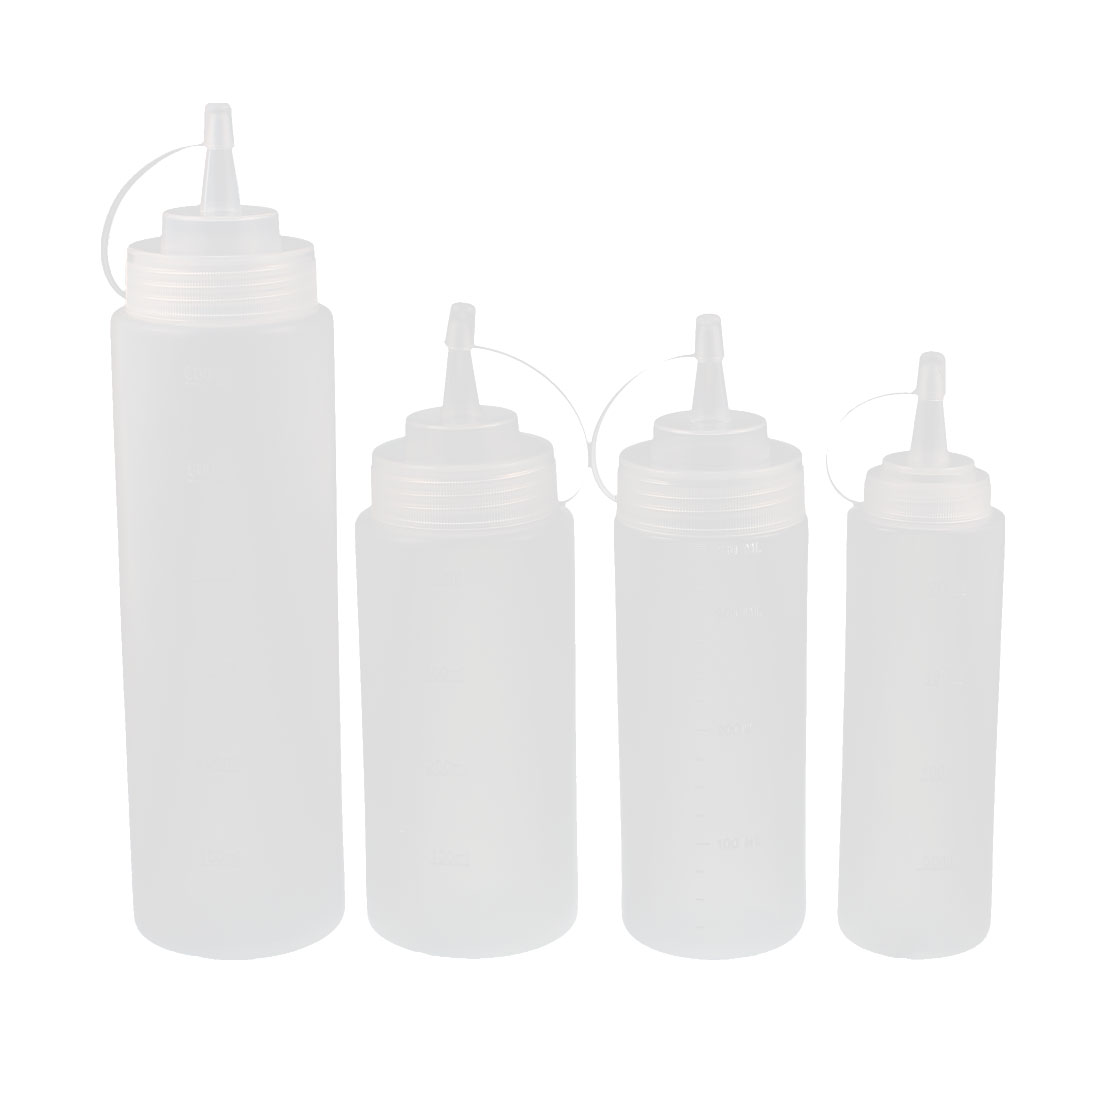 200ml 360ml 400ml 500ml 600ml Plastic Food Squeeze Bottles Condiment Ketchup Kit by